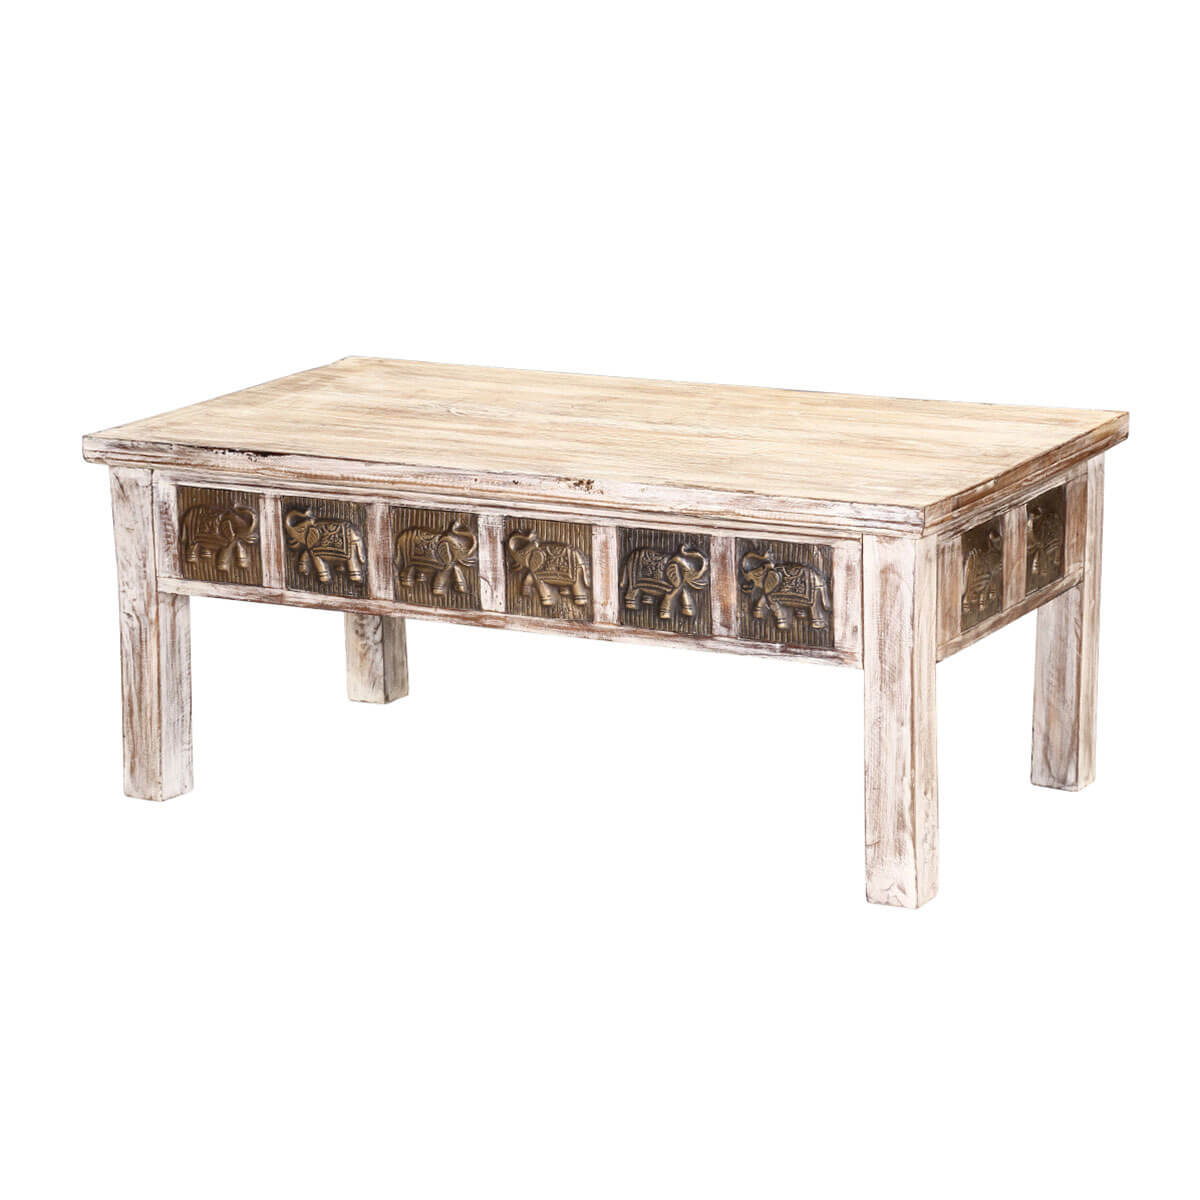 "Winter White Mango Wood Brass Inlay 43"" Rustic Coffee Table"